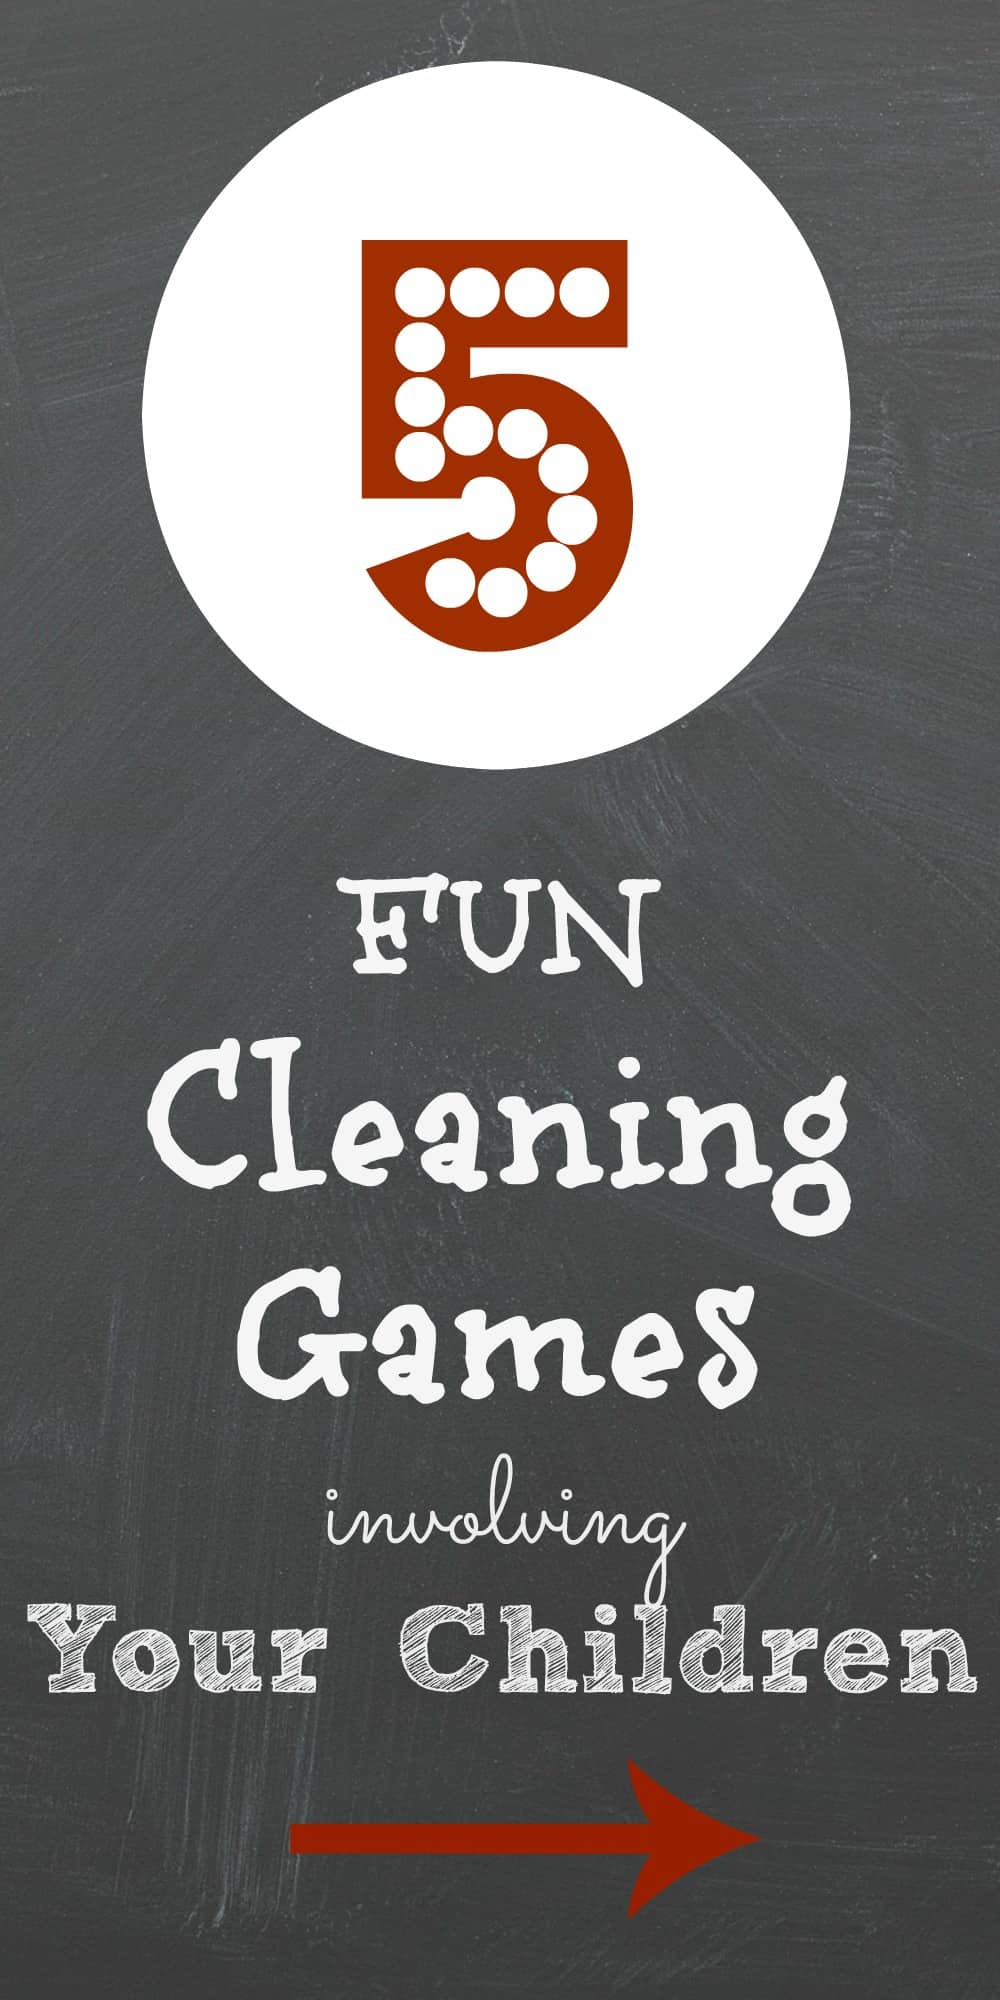 Fun Cleaning Games Involving Your Children